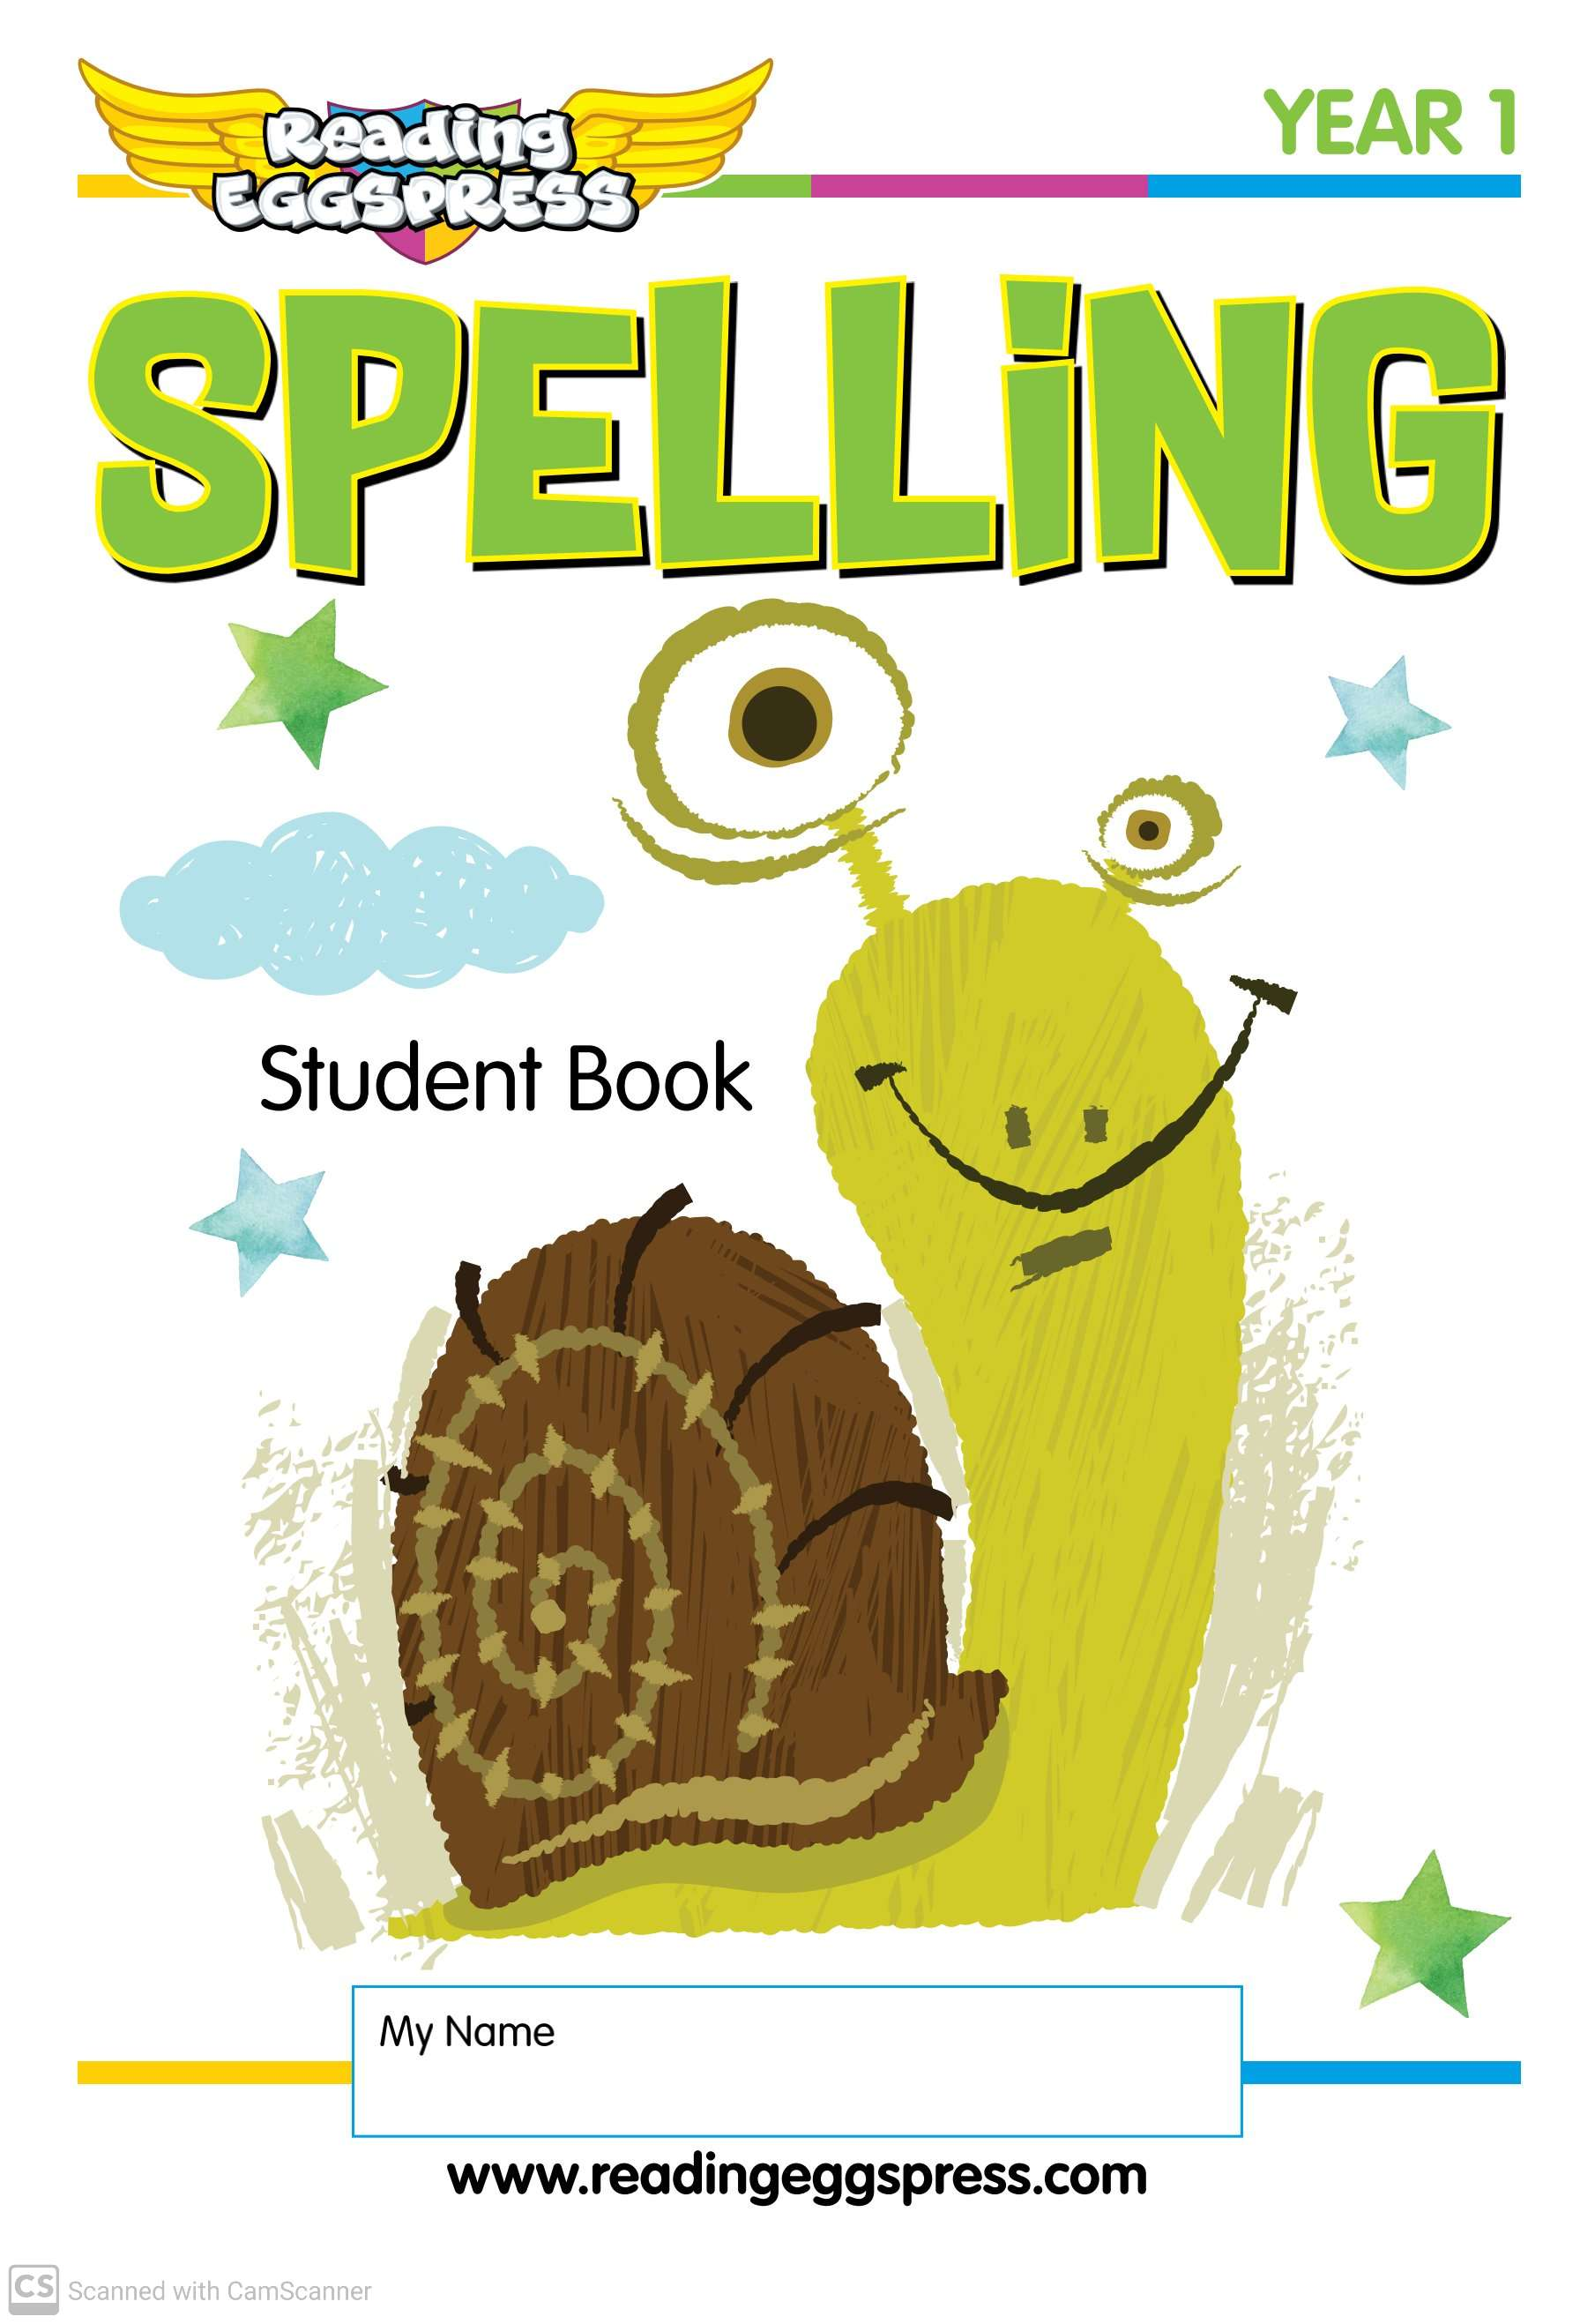 English Spelling Worksheets For Grade 1 Teaching Kids To